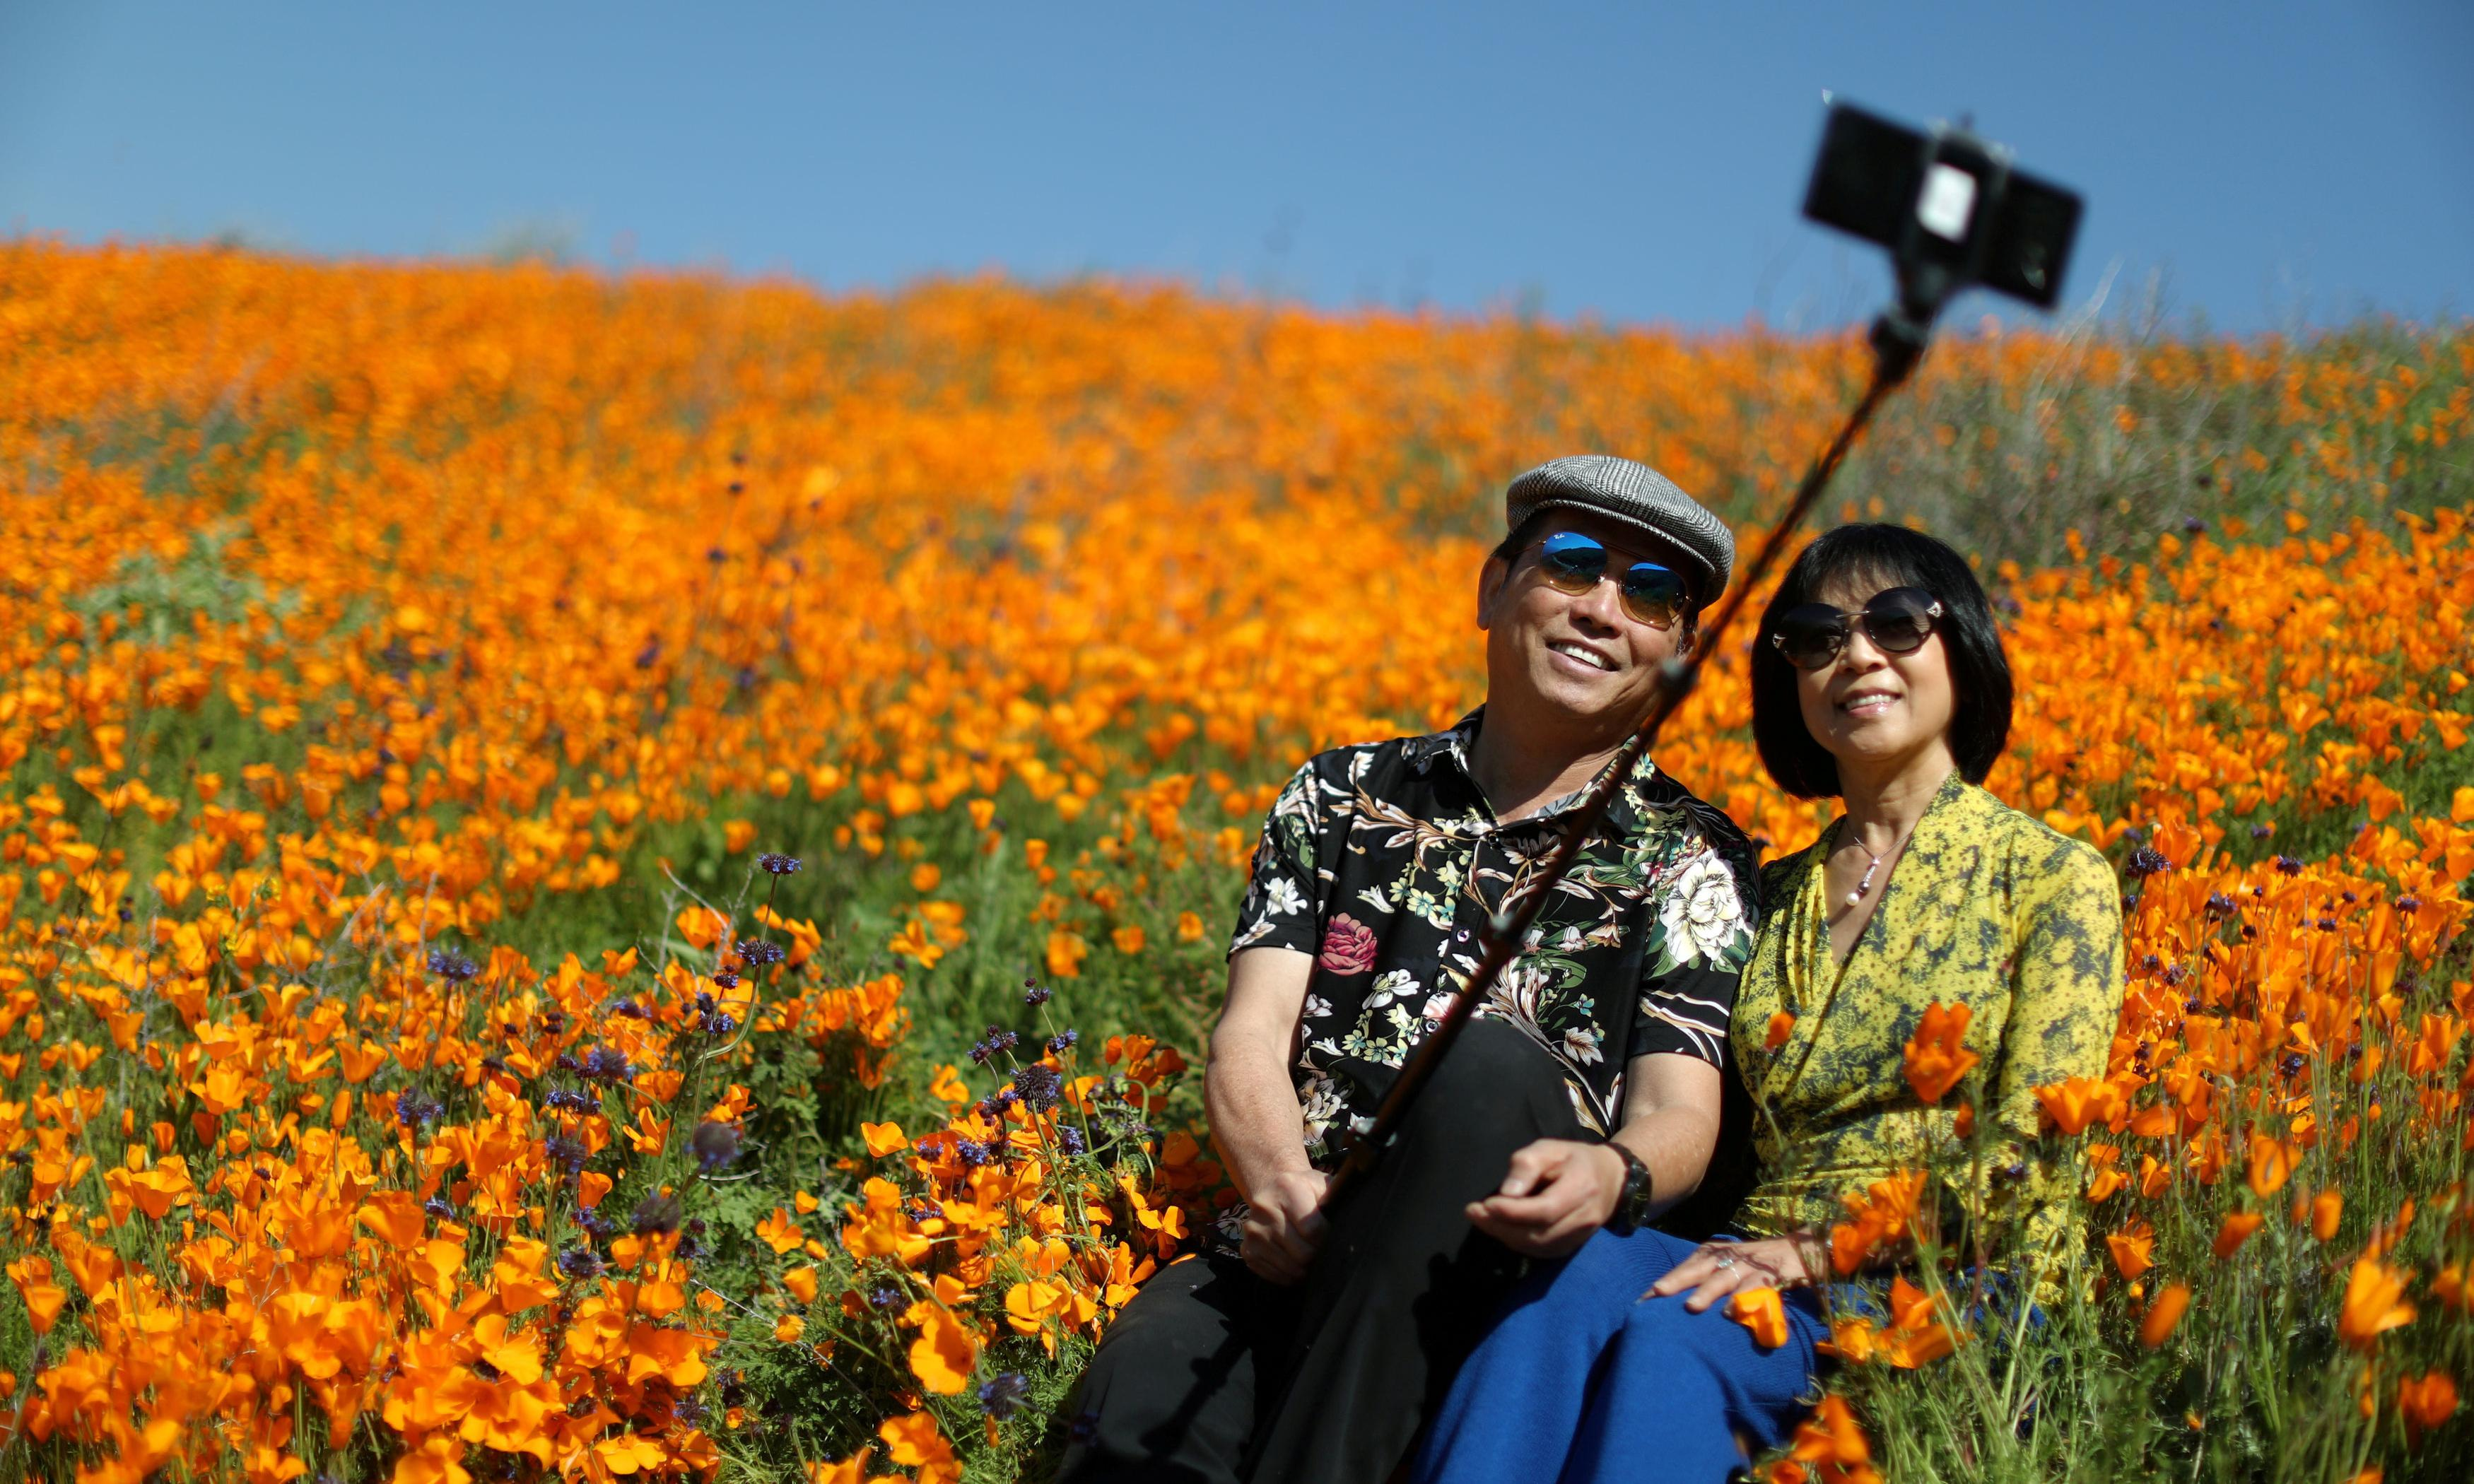 #Superbloom or #poppynightmare? Selfie chaos forces canyon closure